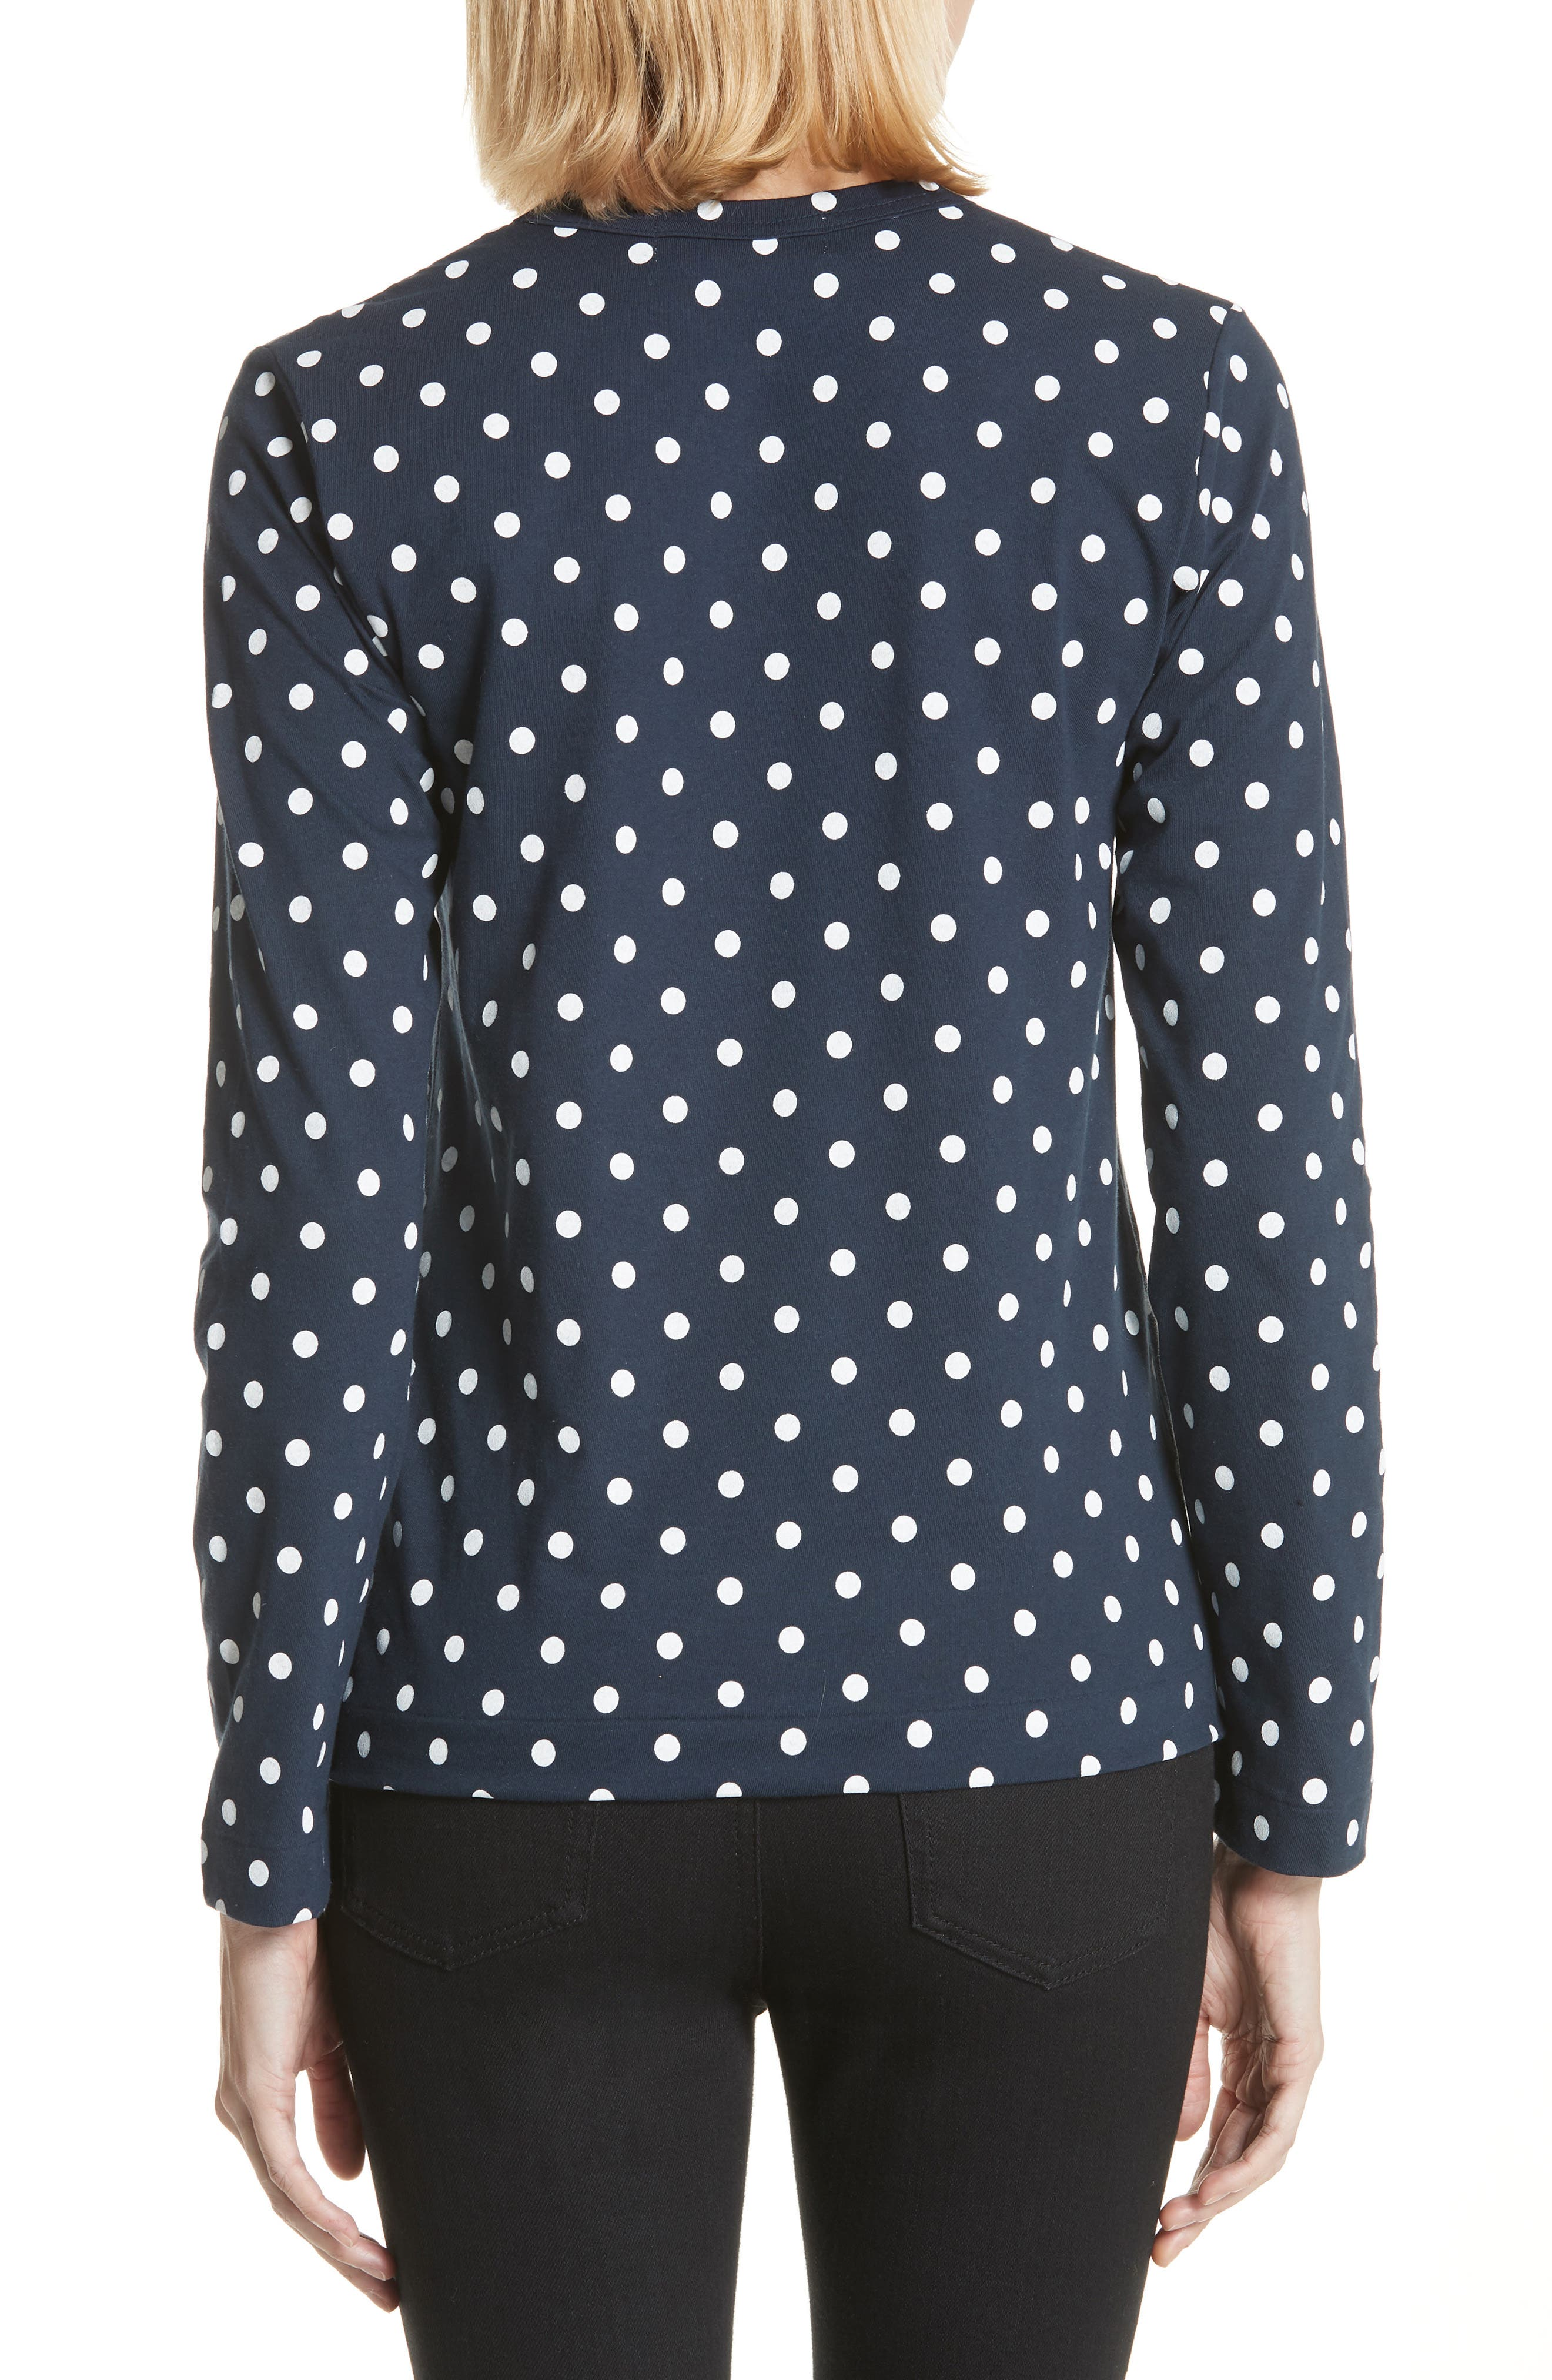 Comme des Garçons PLAY Red Heart Polka Dot Tee,                             Alternate thumbnail 2, color,                             Navy/ White